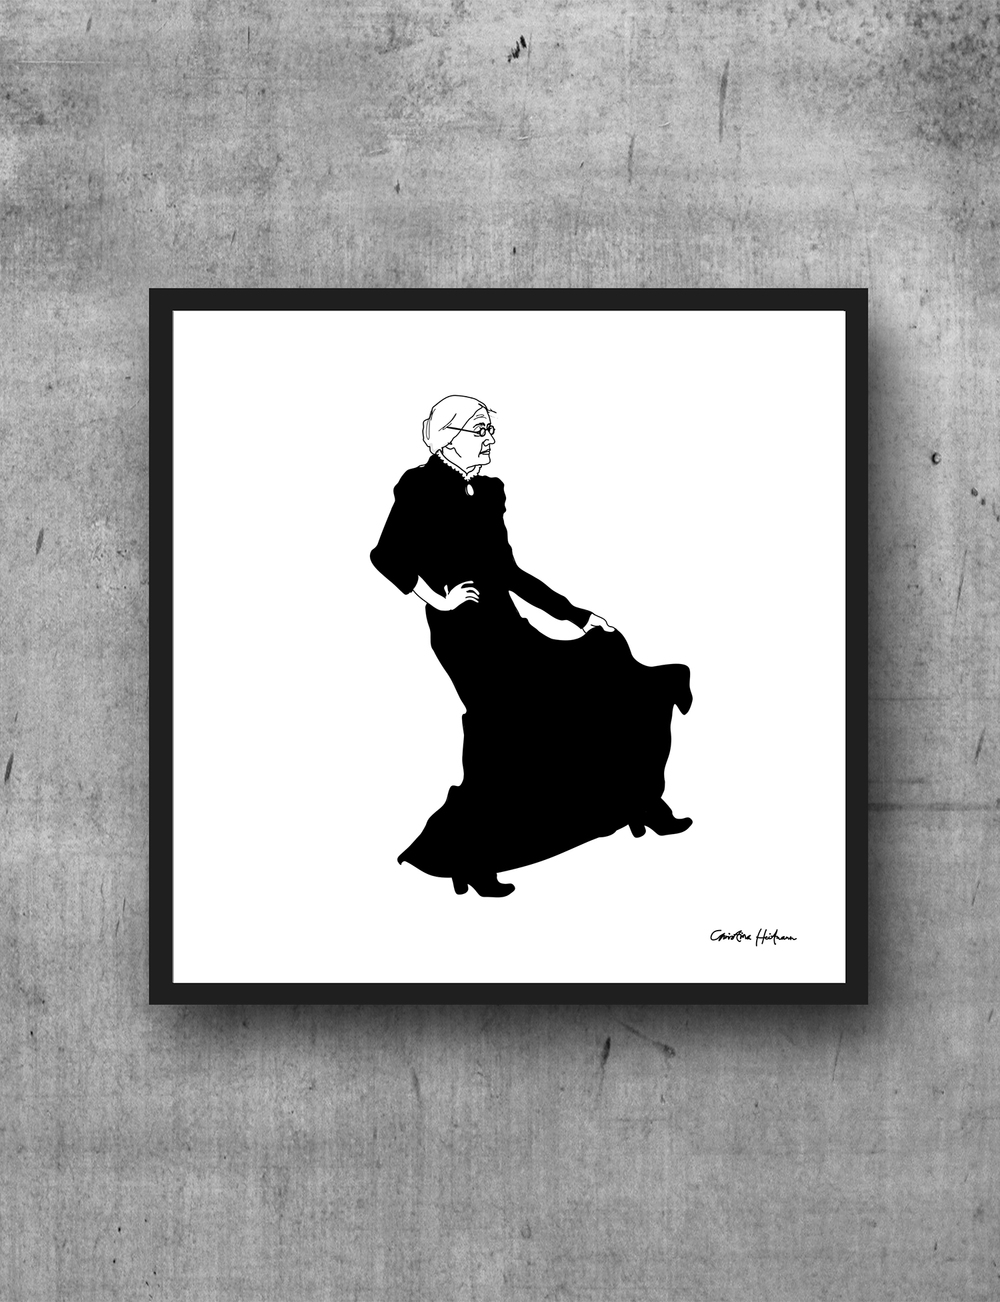 susan-b-anthony-frame-christina-heitmann-illustration.jpg